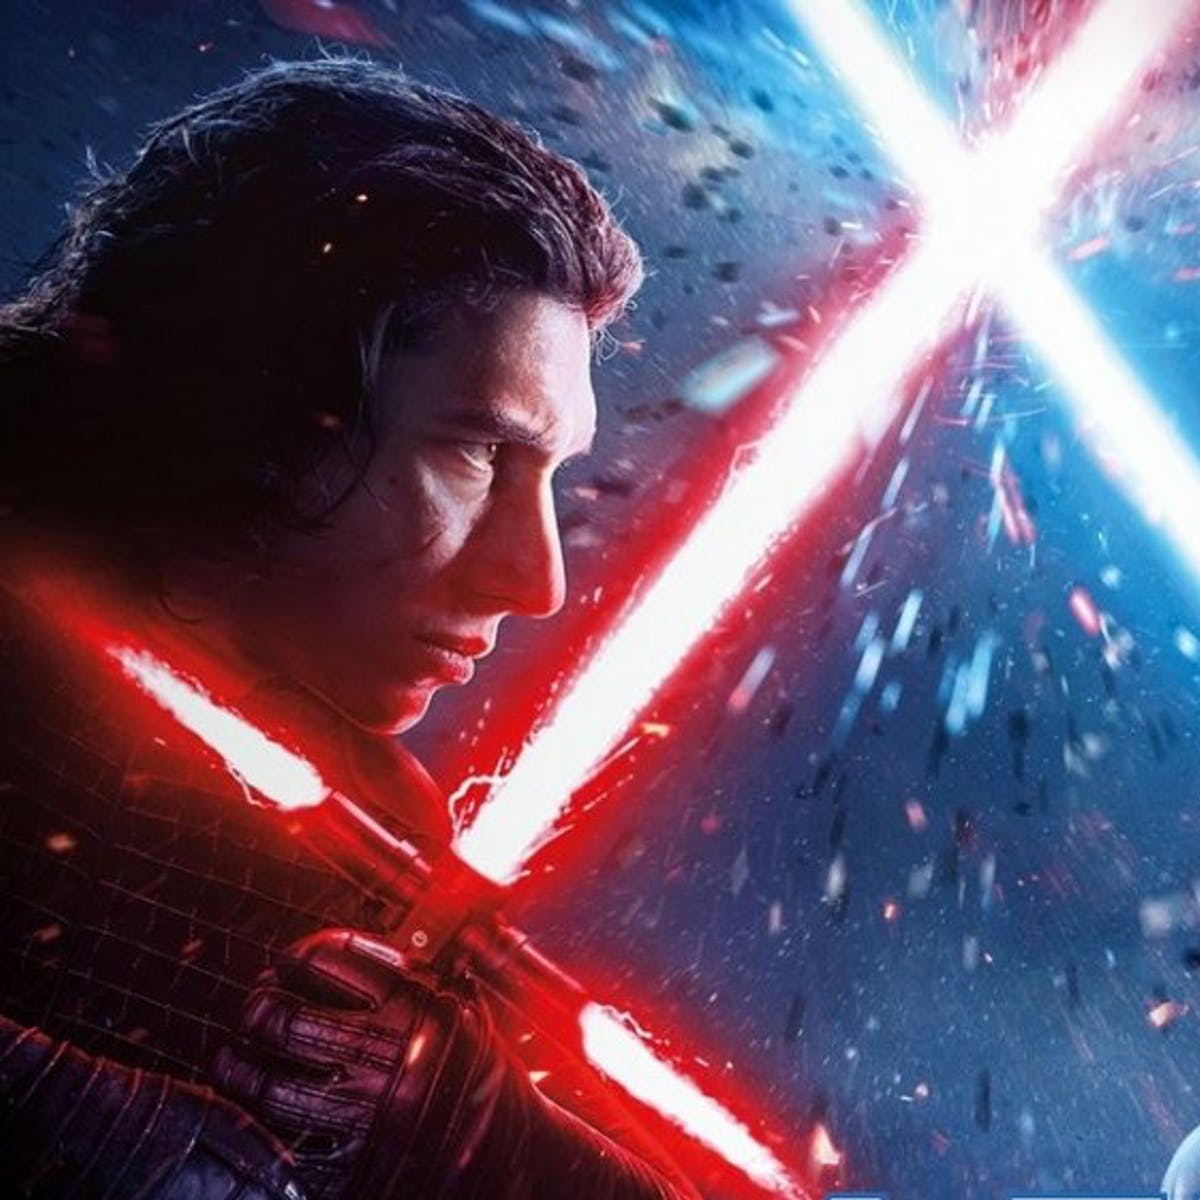 The 6 biggest differences in Colin Trevorrow's leaked 'Star Wars 9' script